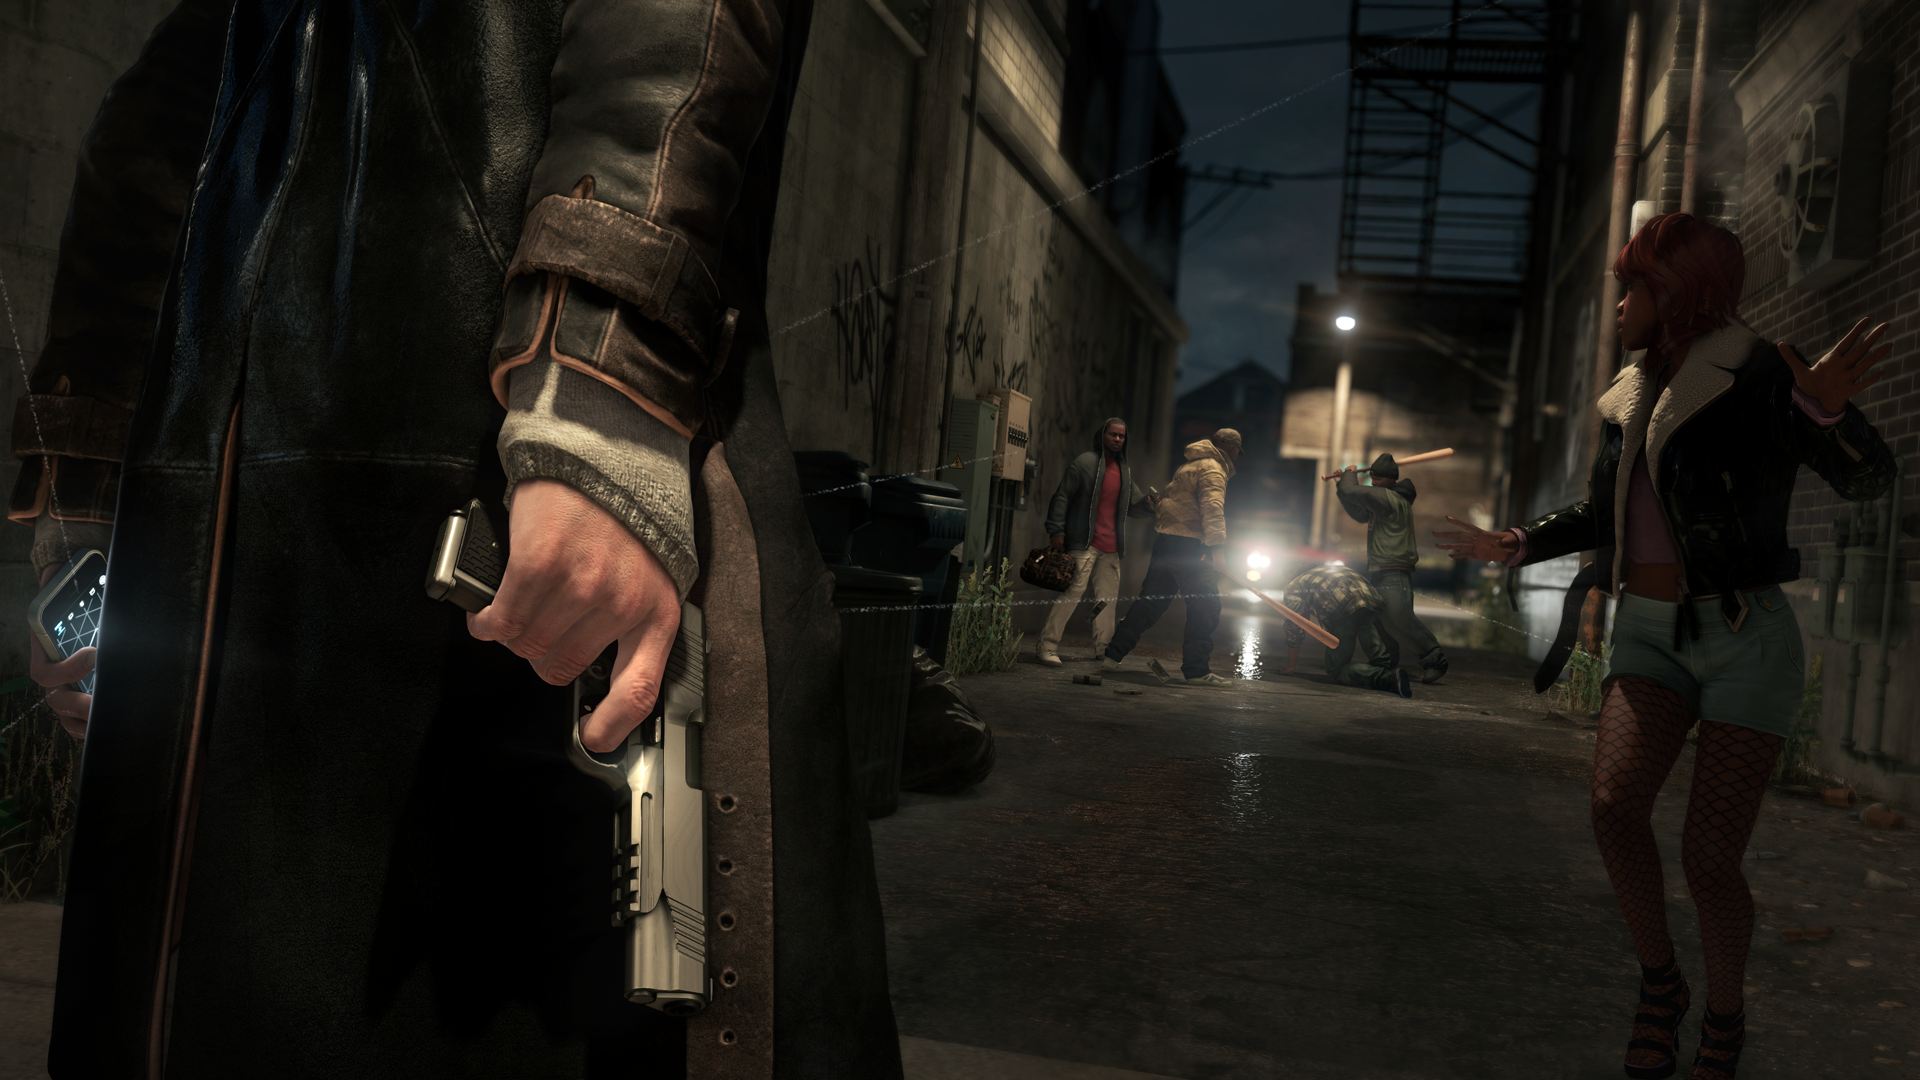 Watch_dogs_vigilante_alley